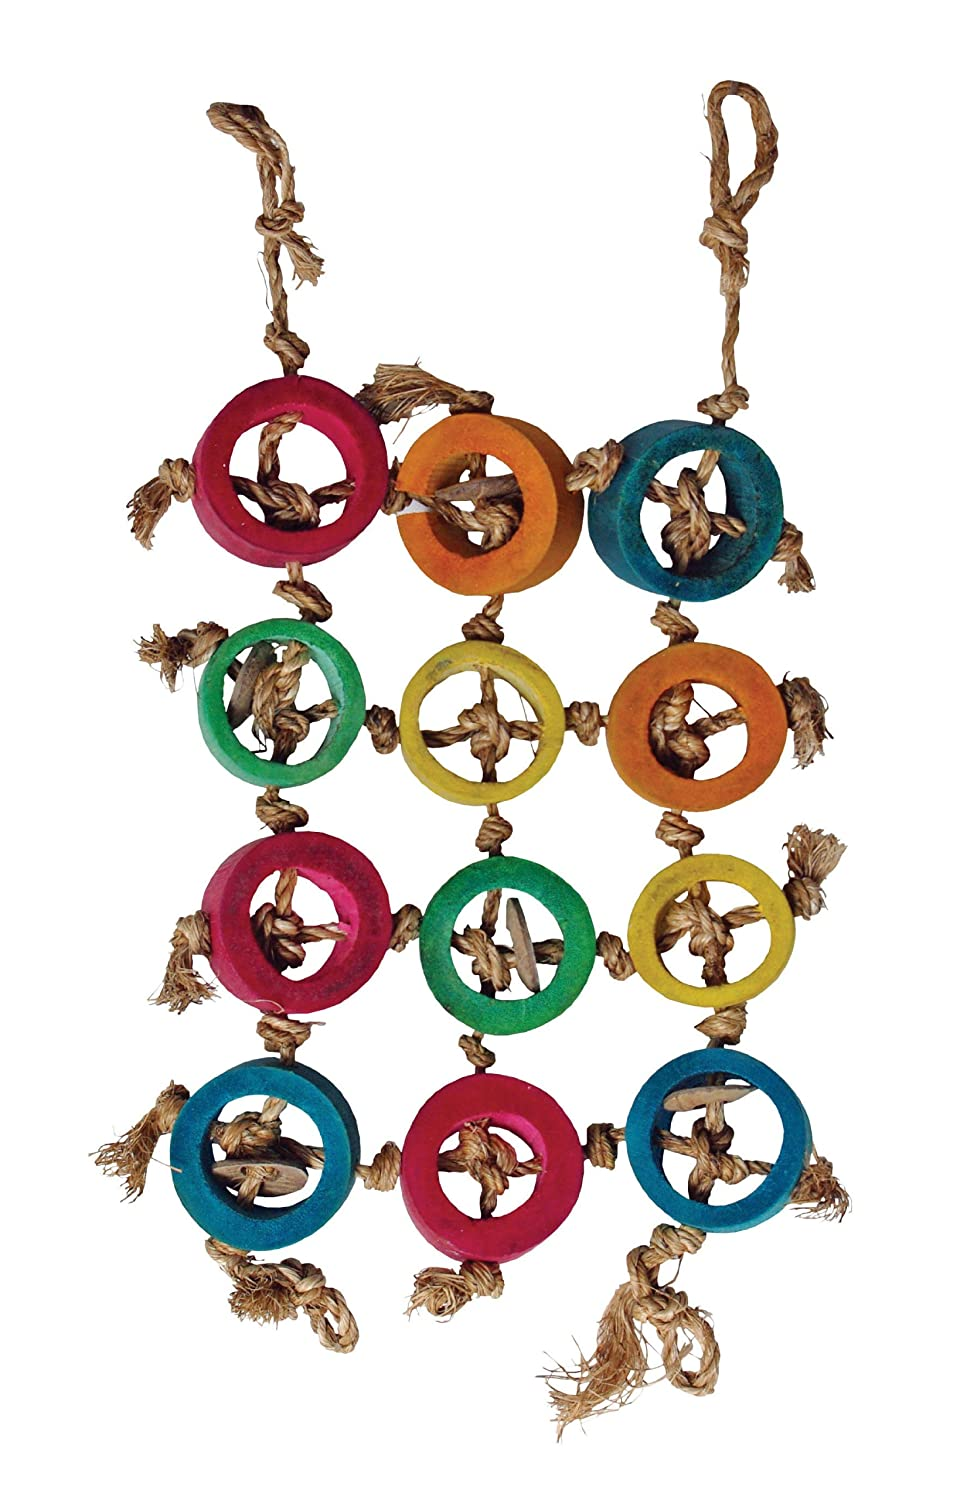 36X46Cm Living World Hand Made Ring Mural Bird Toy, Large, 36 x 46 cm